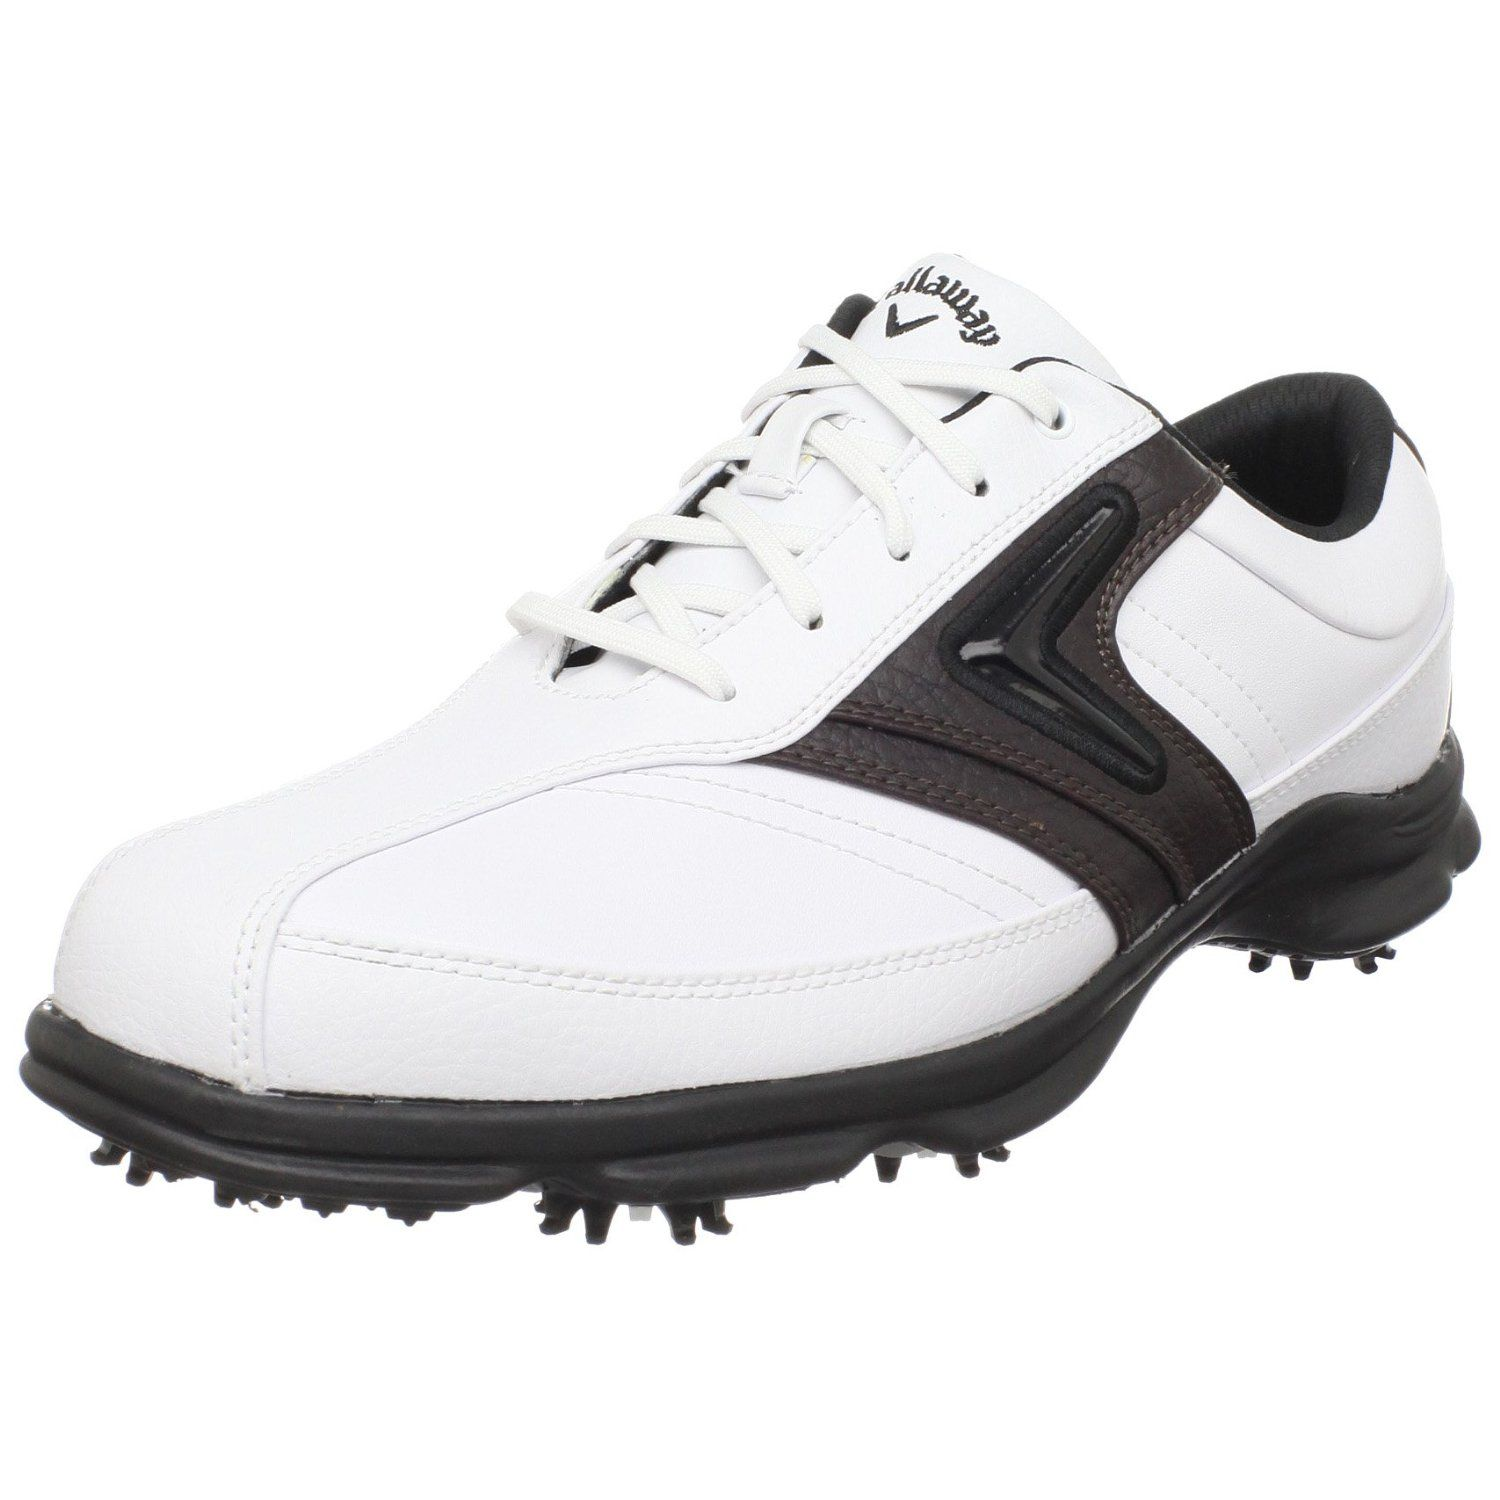 12++ Callaway golf shoe laces information